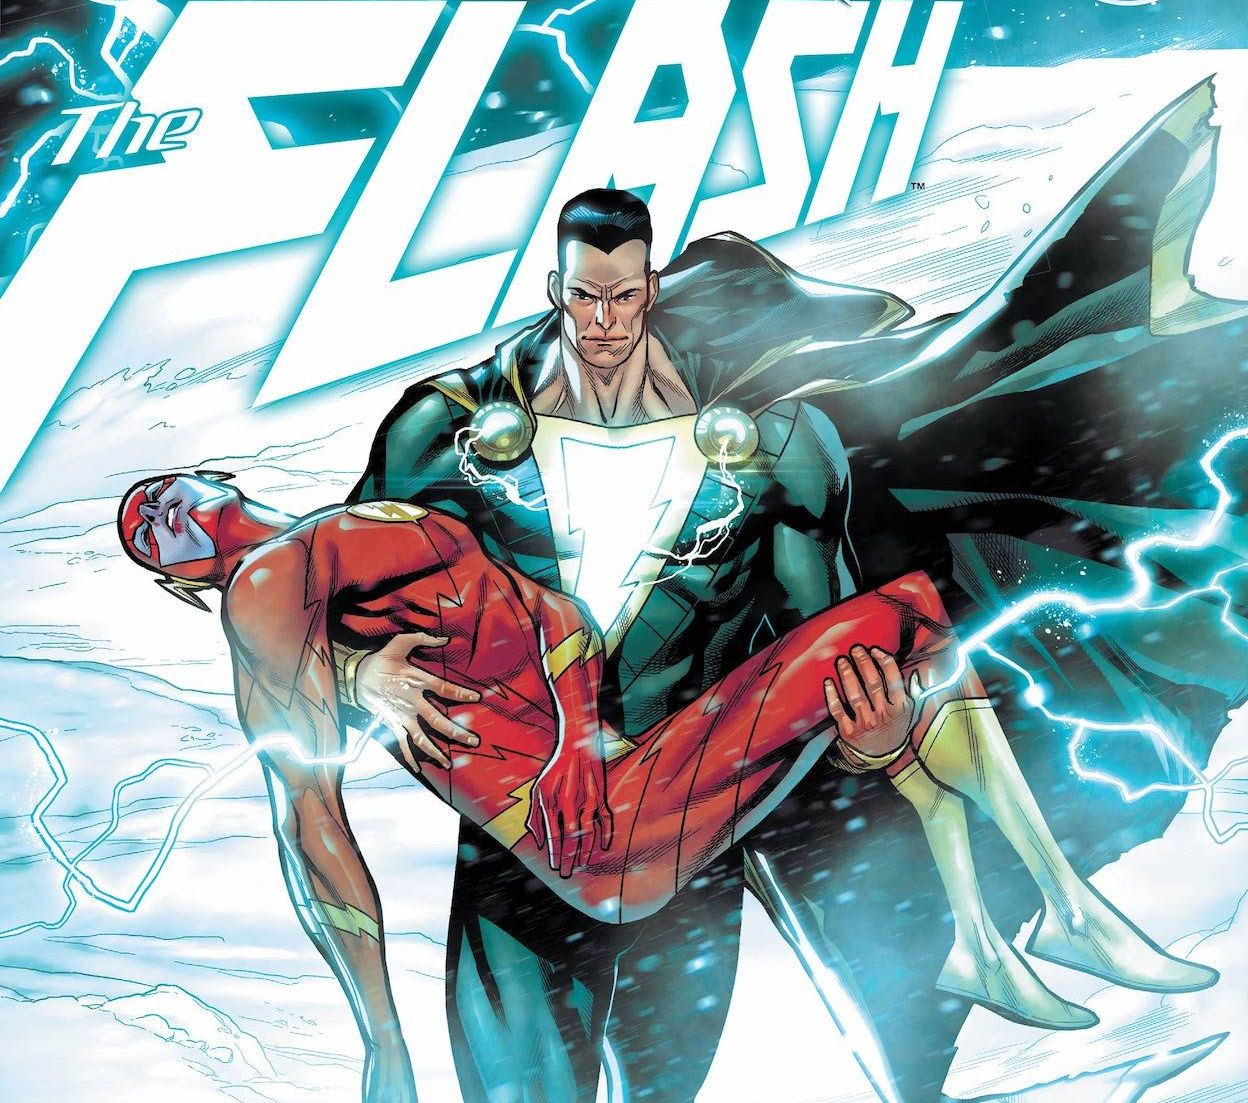 'The Flash' #767 review